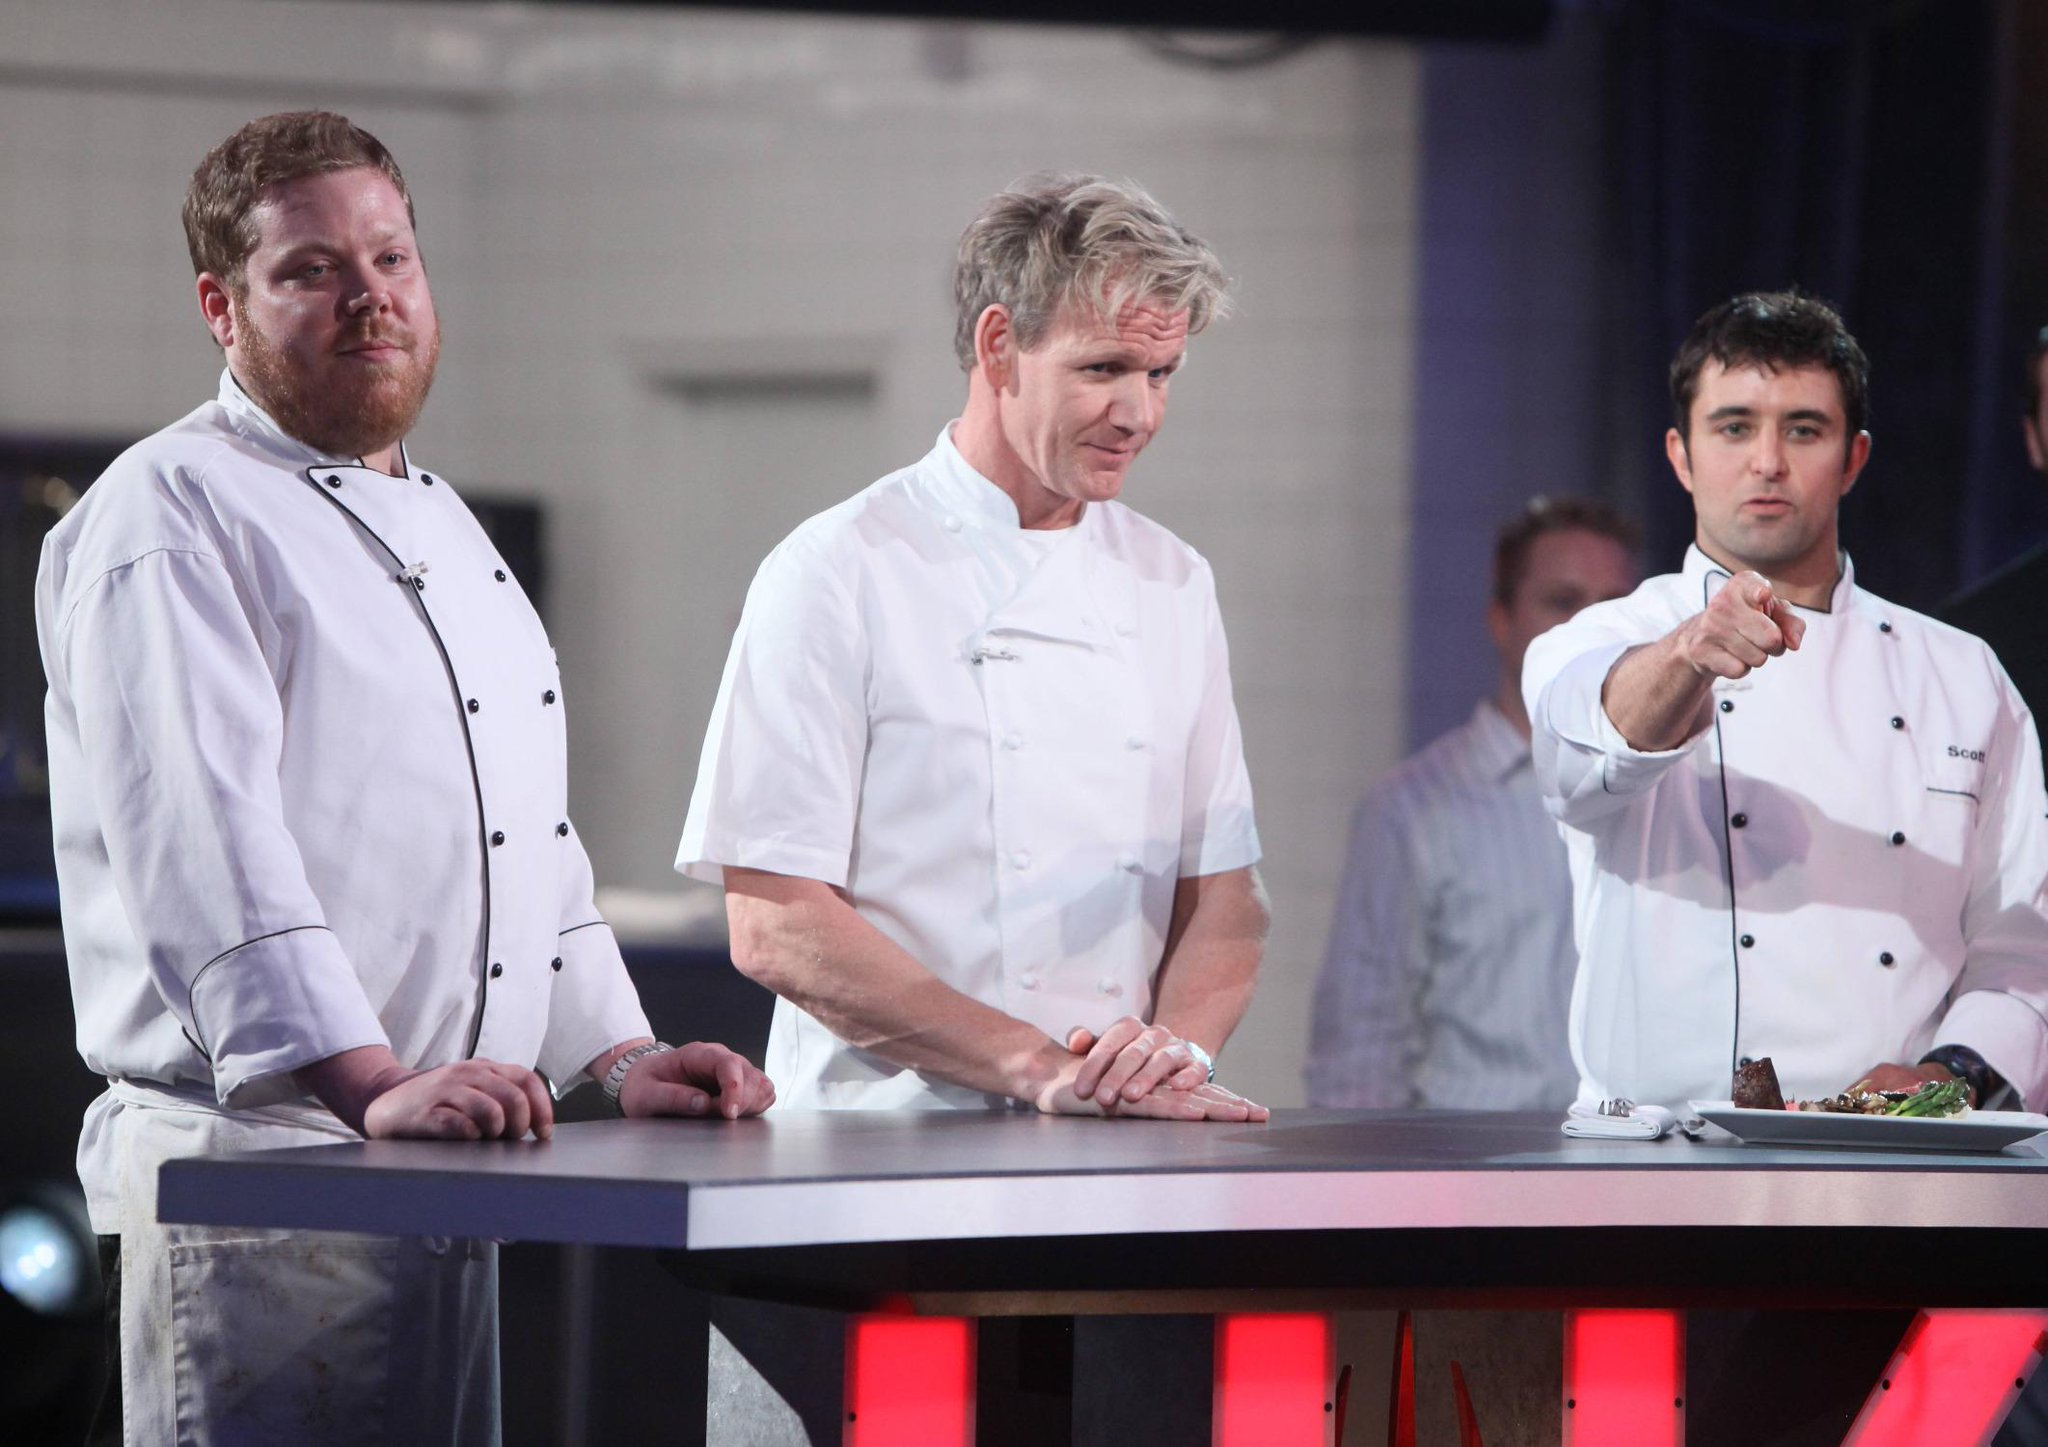 RT @HellsKitchenFOX: RT if you're pumped for the Season Finale of #hellskitchen - tonight at 8/7c on @FOXTV! http://t.co/Q6vJm24hzk